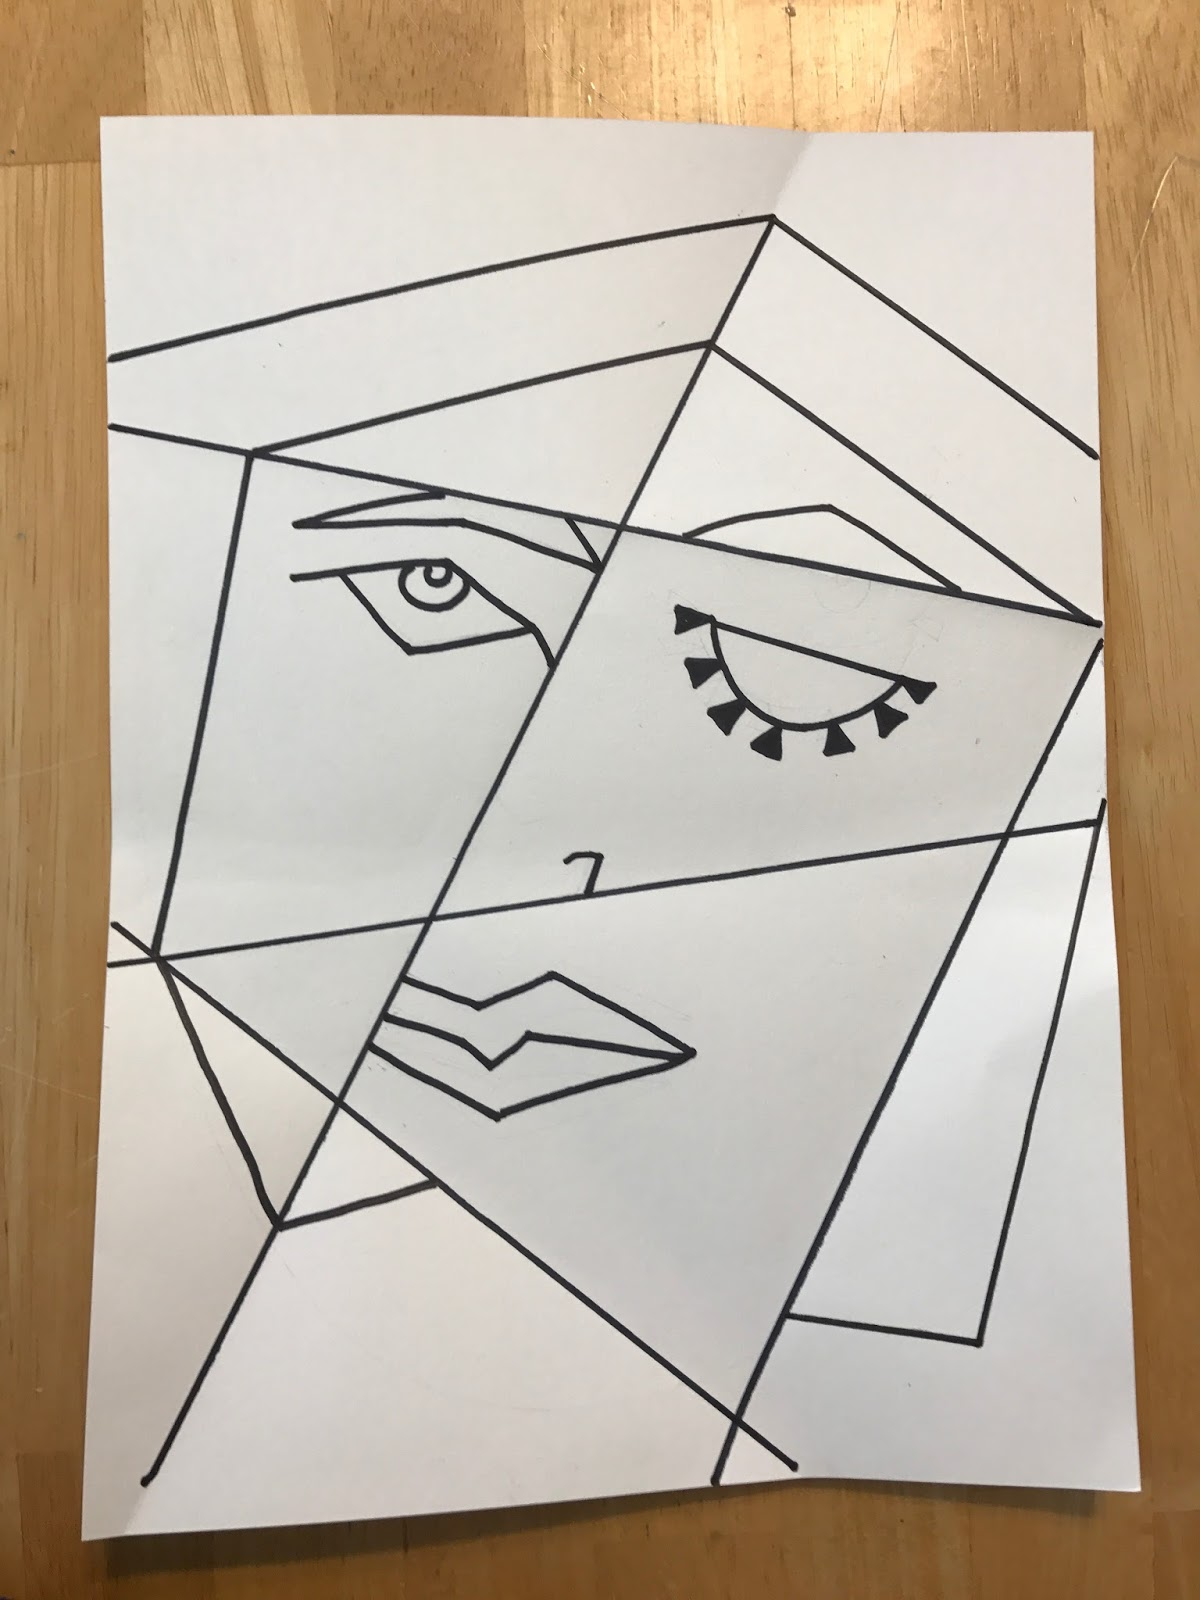 kathy 39 s art project ideas picasso portrait inspired art lesson using folded paper and watercolor. Black Bedroom Furniture Sets. Home Design Ideas